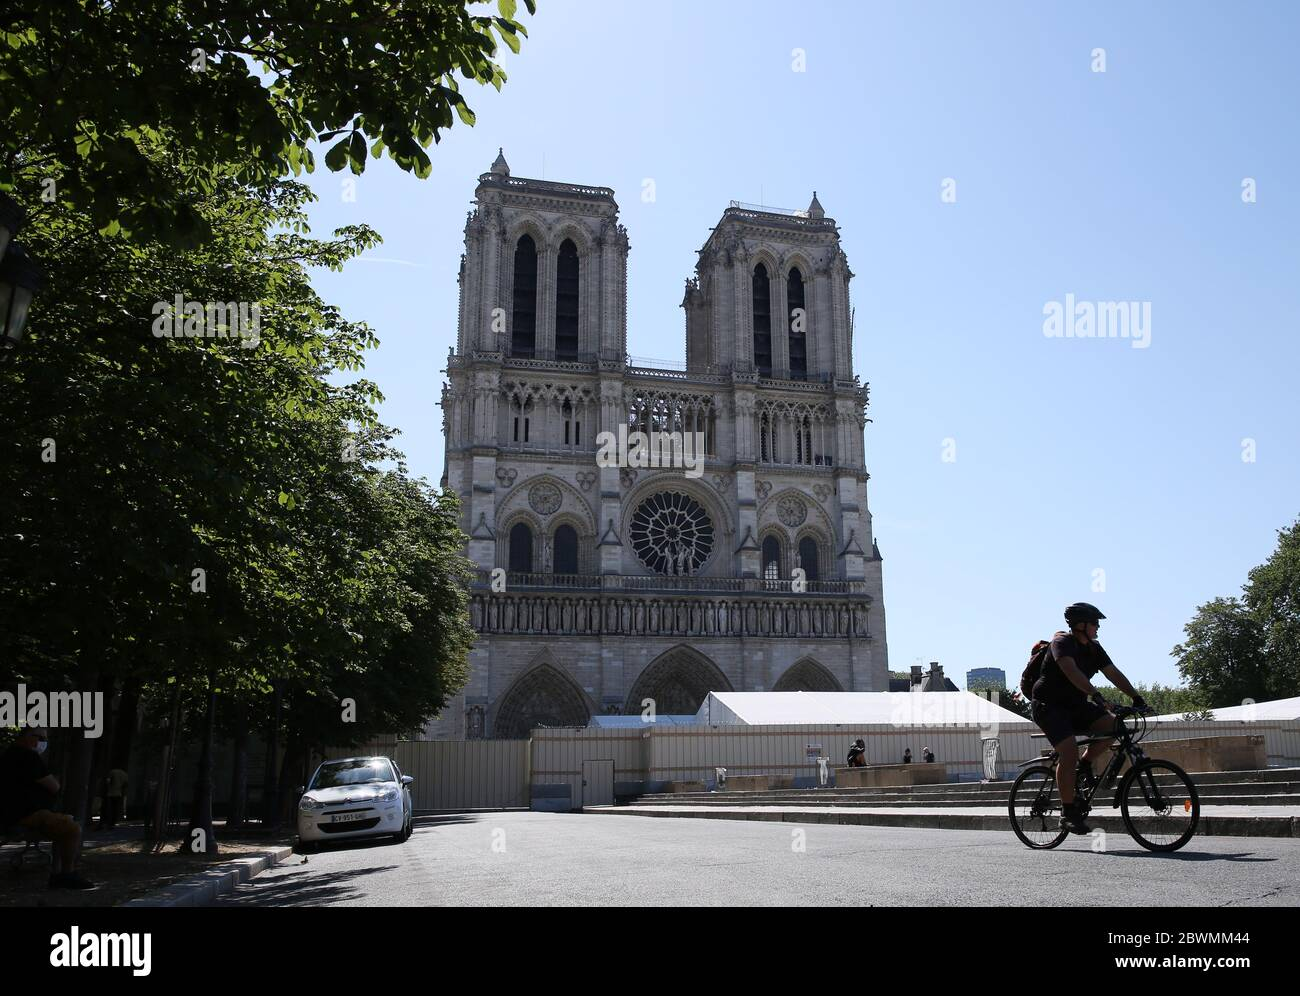 Paris, June 2. 15th Apr, 2019. A man rides a bike in front of the Notre-Dame Cathedral in Paris, France, June 2, 2020. The Parvis Notre-Dame was reopened to the public from May 31 after more than one year's close because of the huge fire on April 15, 2019. Credit: Gao Jing/Xinhua/Alamy Live News Stock Photo